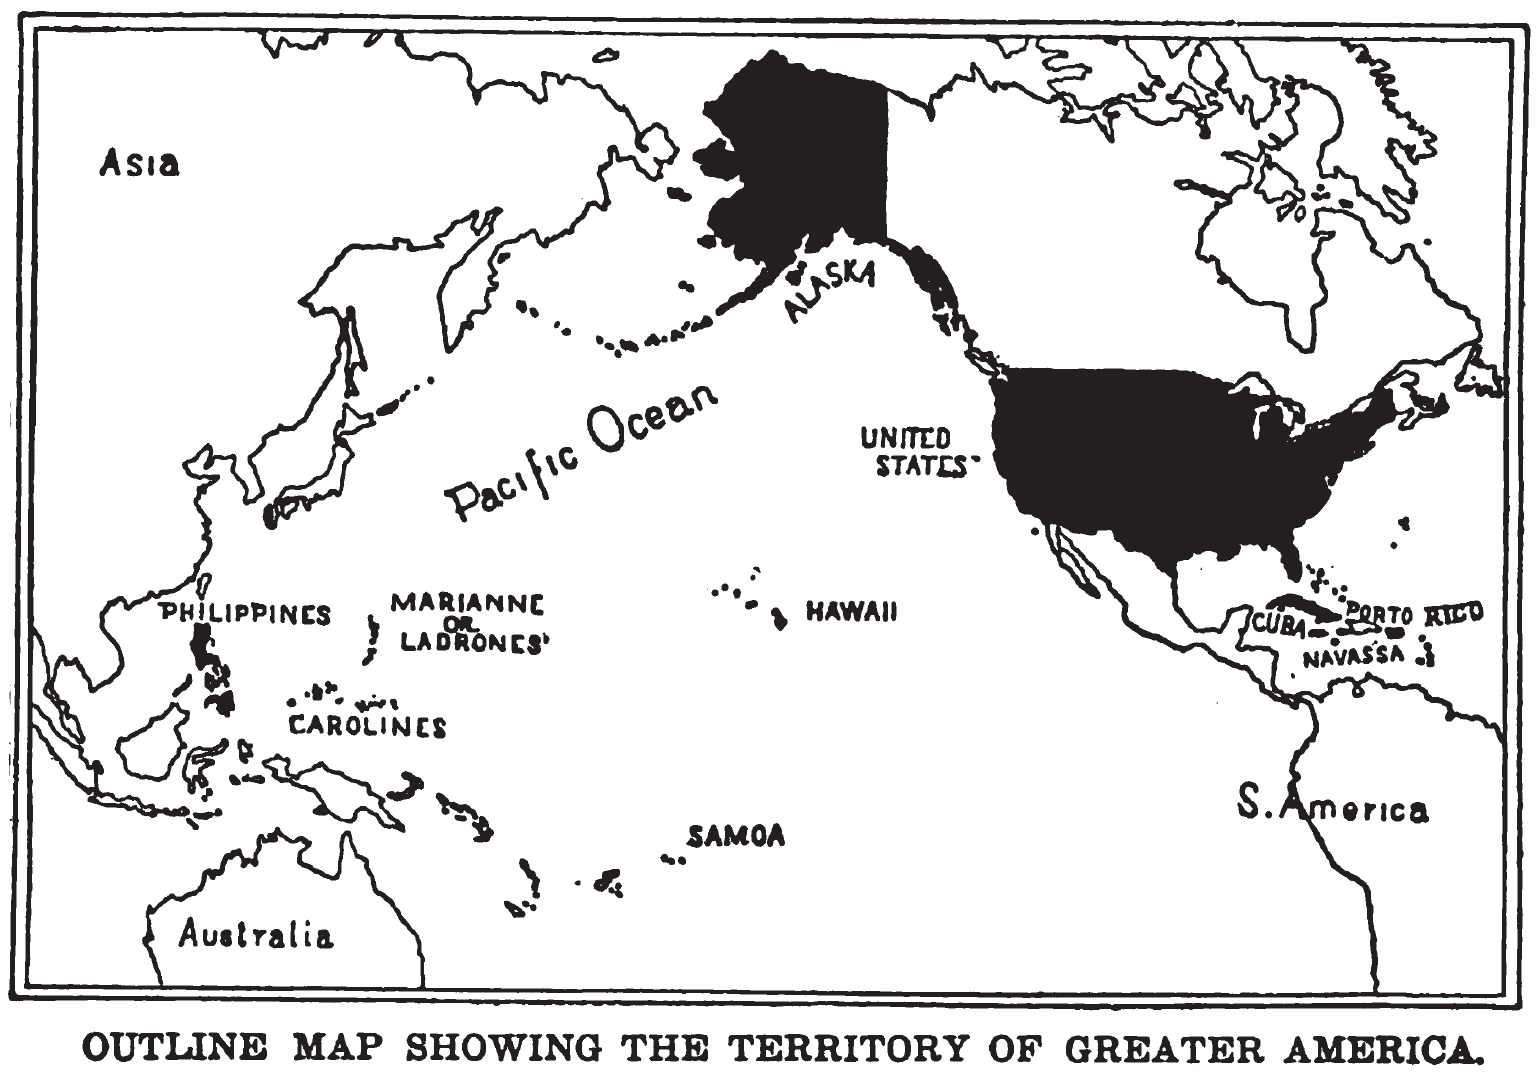 American Century Wikiwand - Us territorial influence 1914 map answers